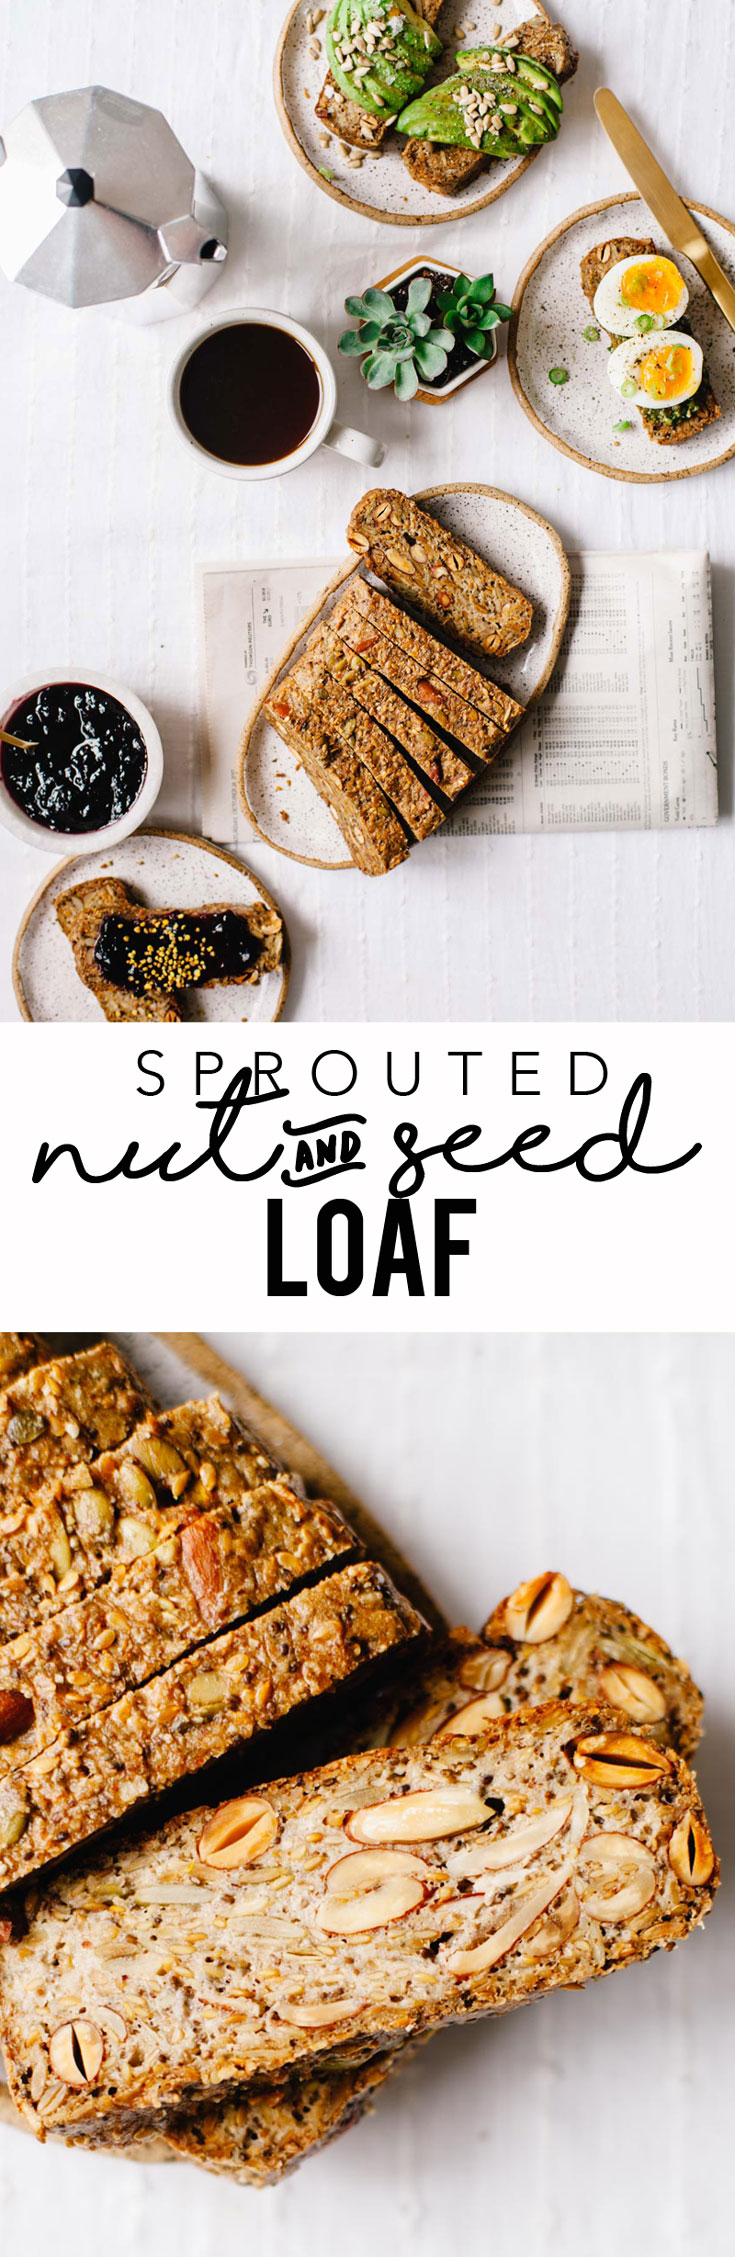 This sprouted nut and seed loaf is totally grain-free, vegan, and made with less than 10 ingredients. Plus it's packed with healthy fats and protein! #vegan #sprouted #bread #healthy #glutenfree | Brewing Happiness